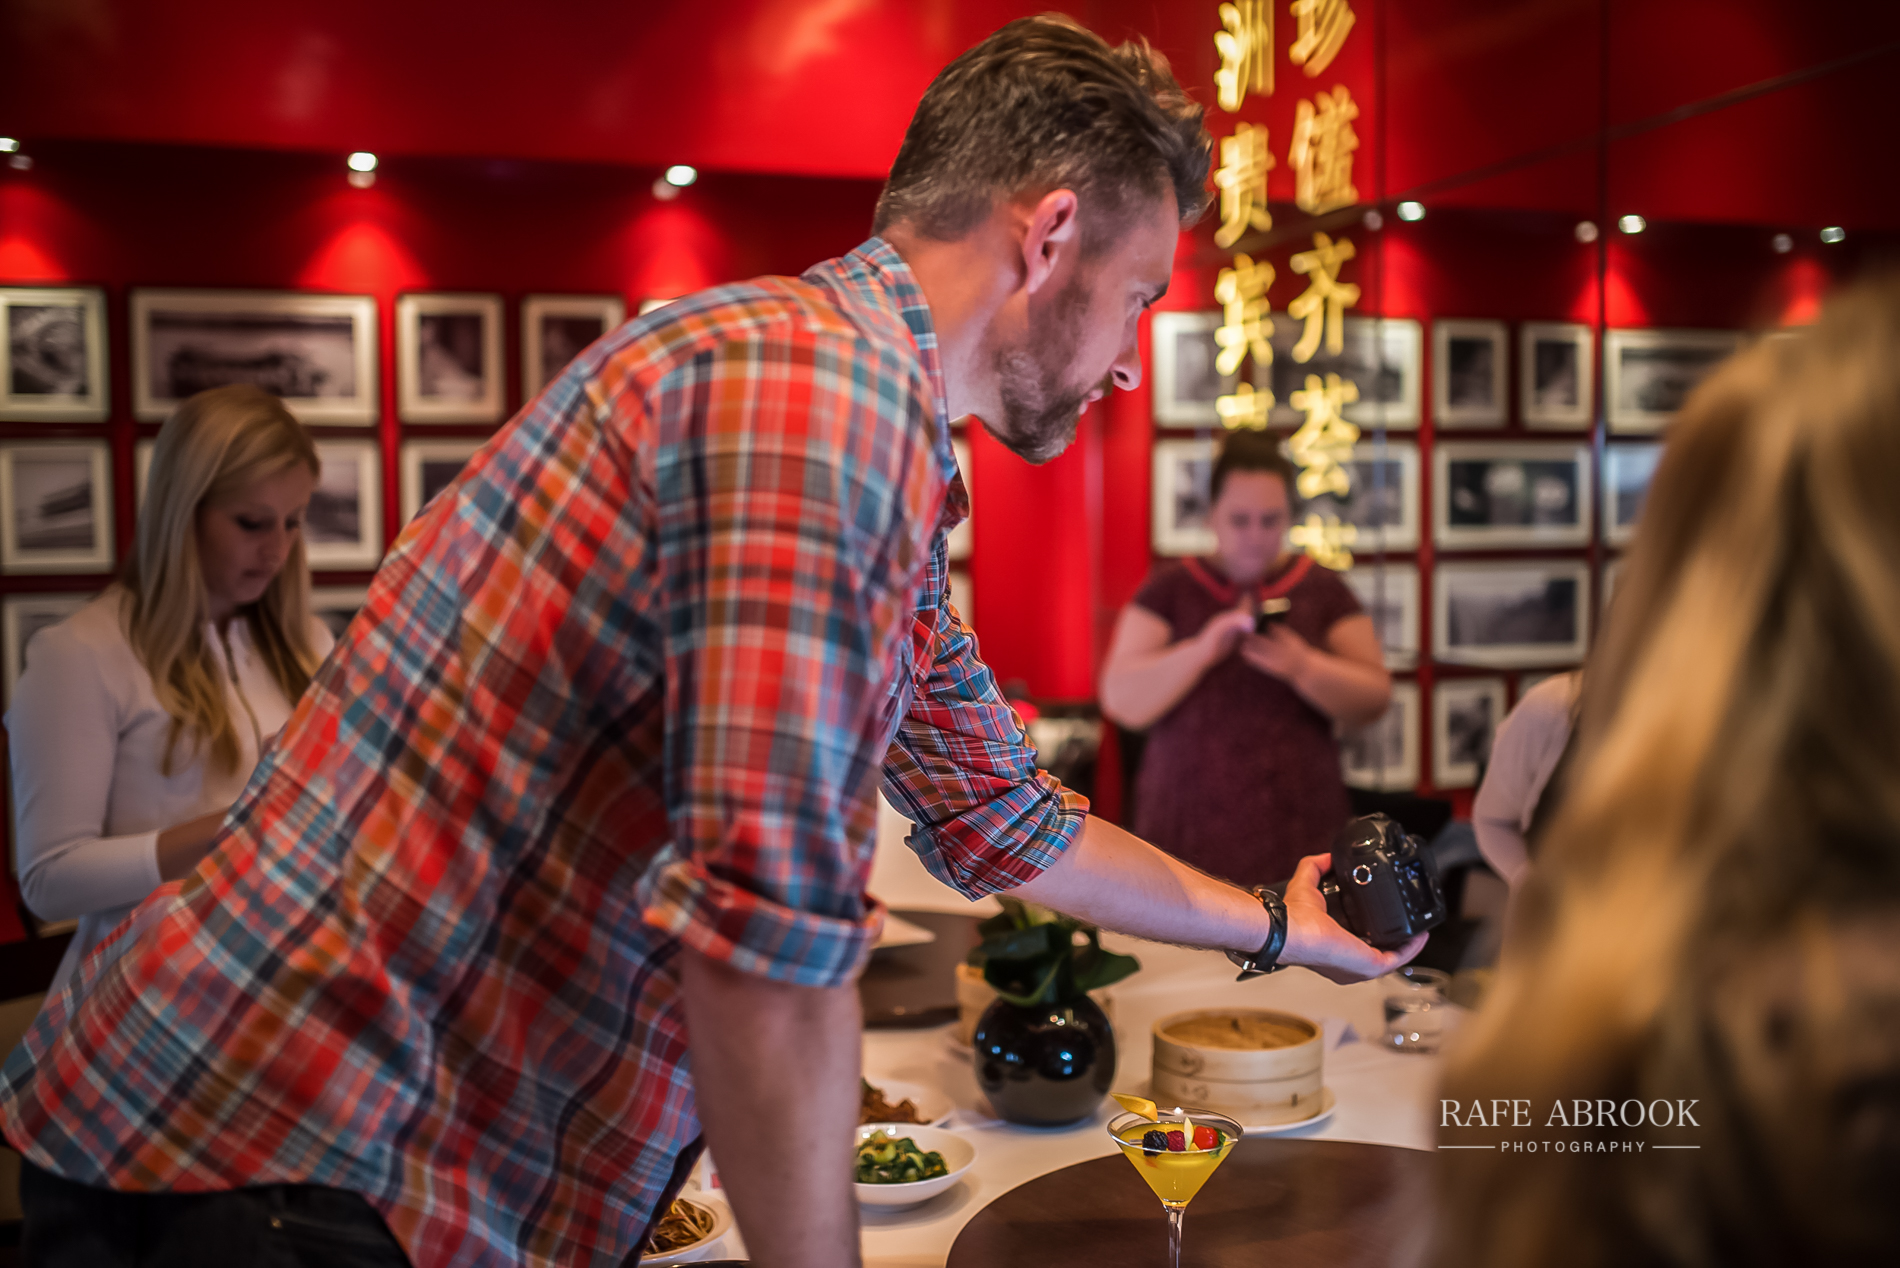 min jiang food blogger rafe abrook photography training-1054.jpg